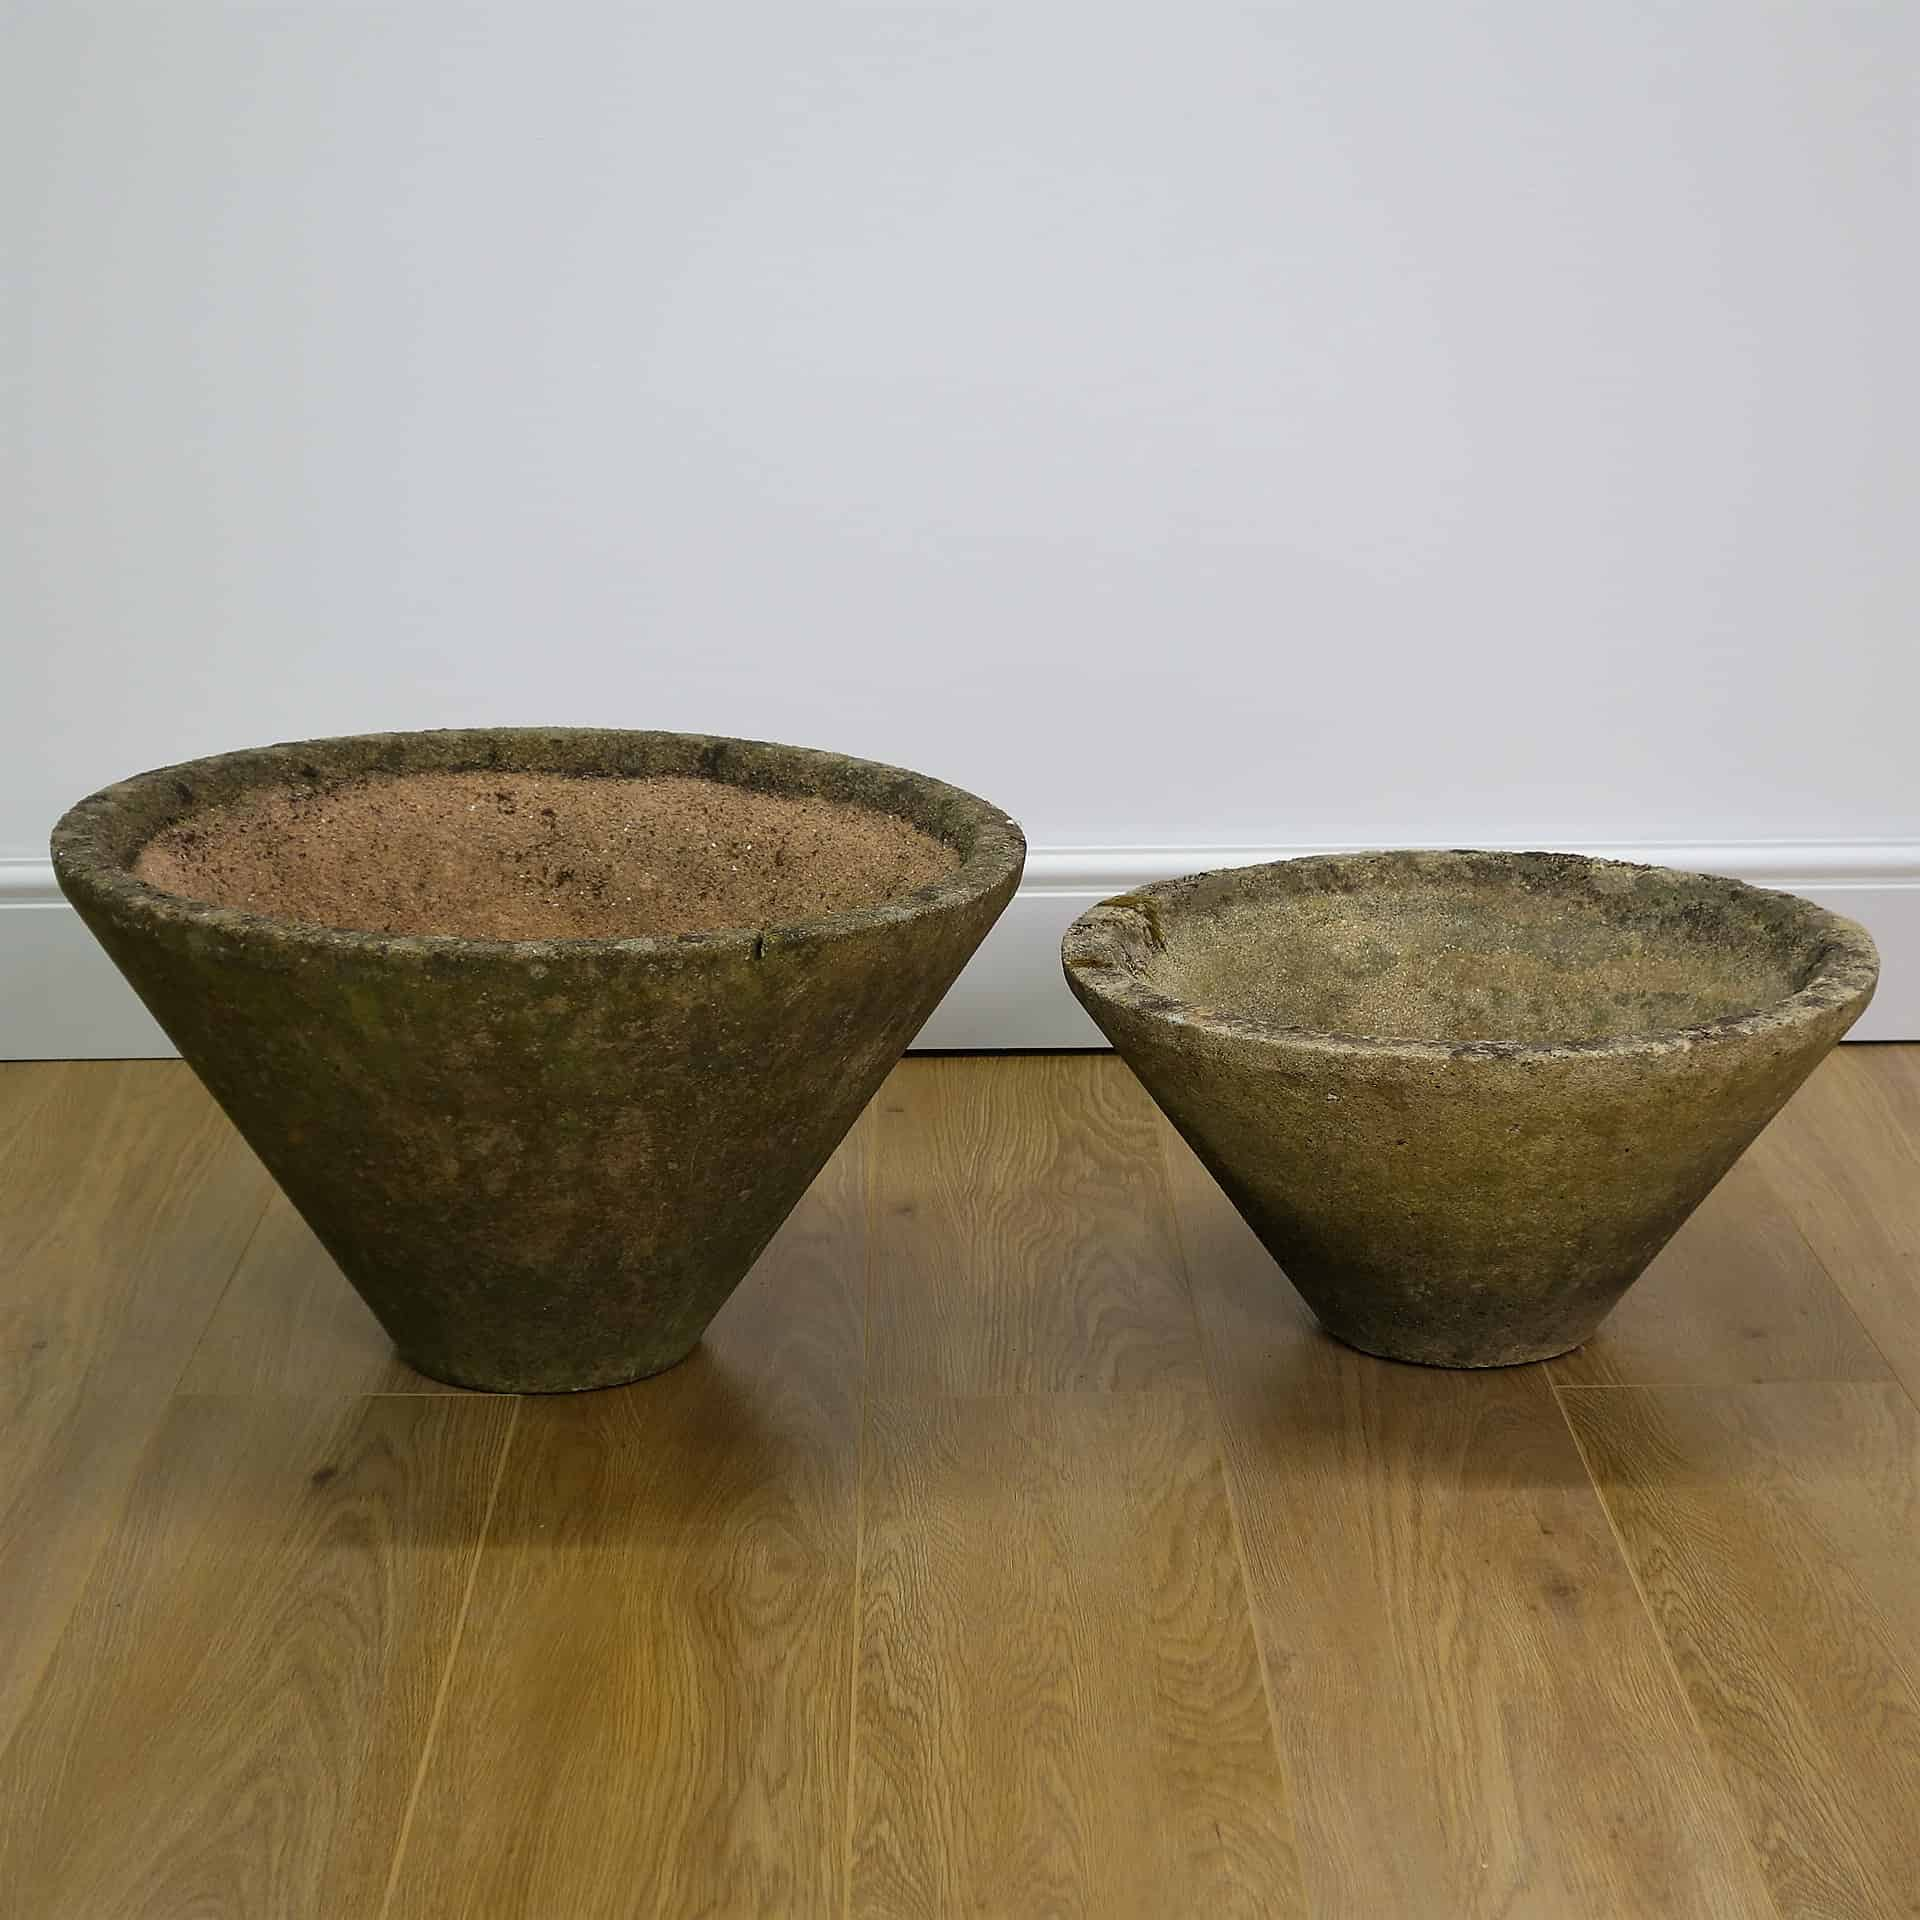 60s conical modernist concrete planters 23.5